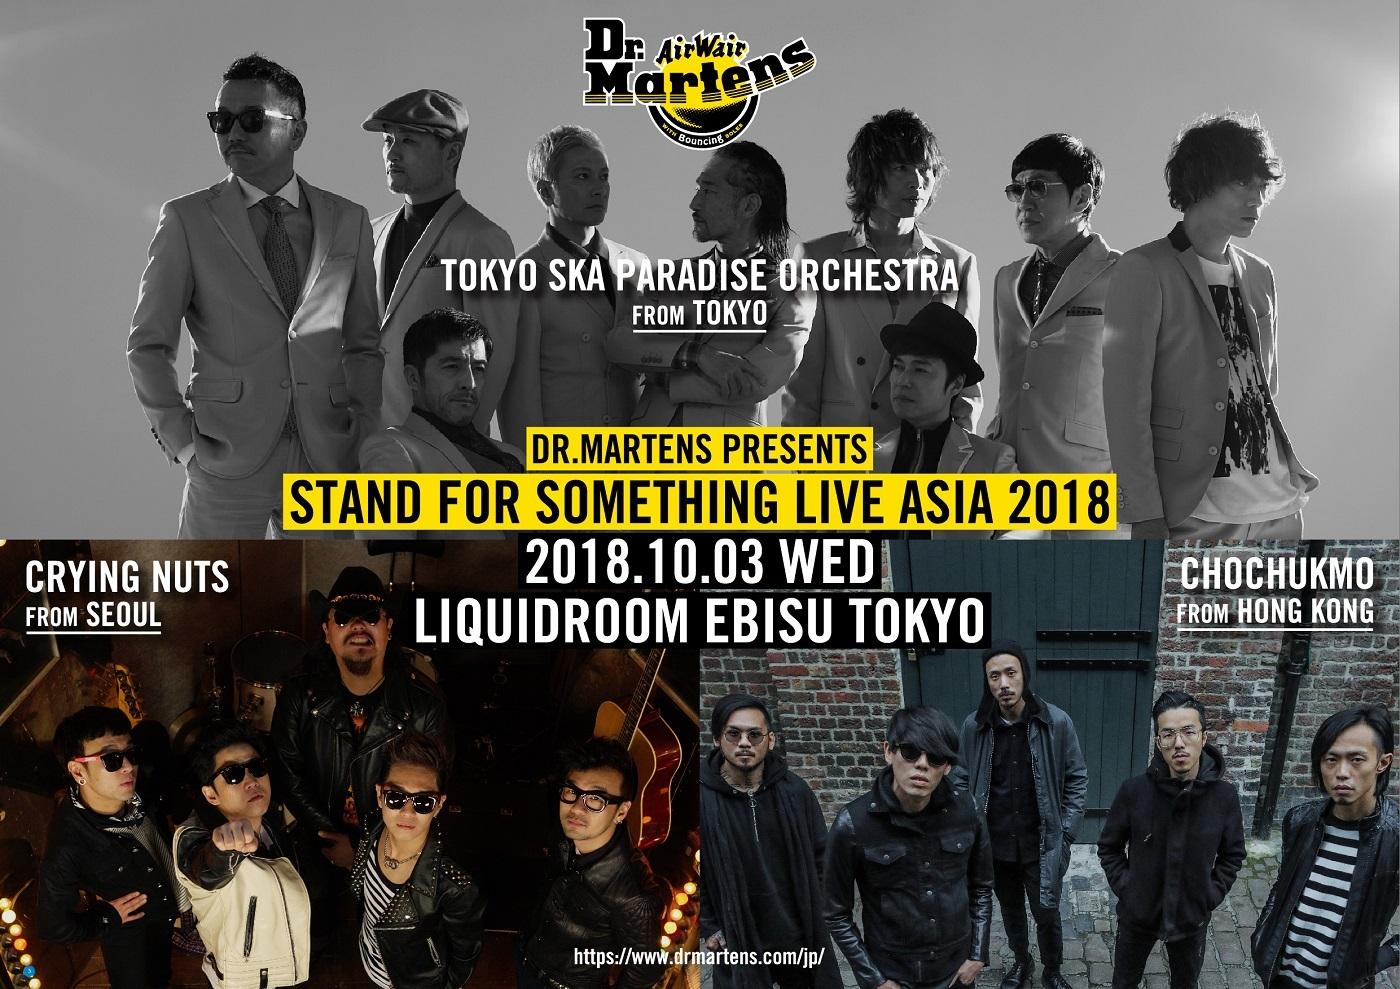 DR.MARTENS PRESENTS STAND FOR SOMETHING LIVE ASIA 2018